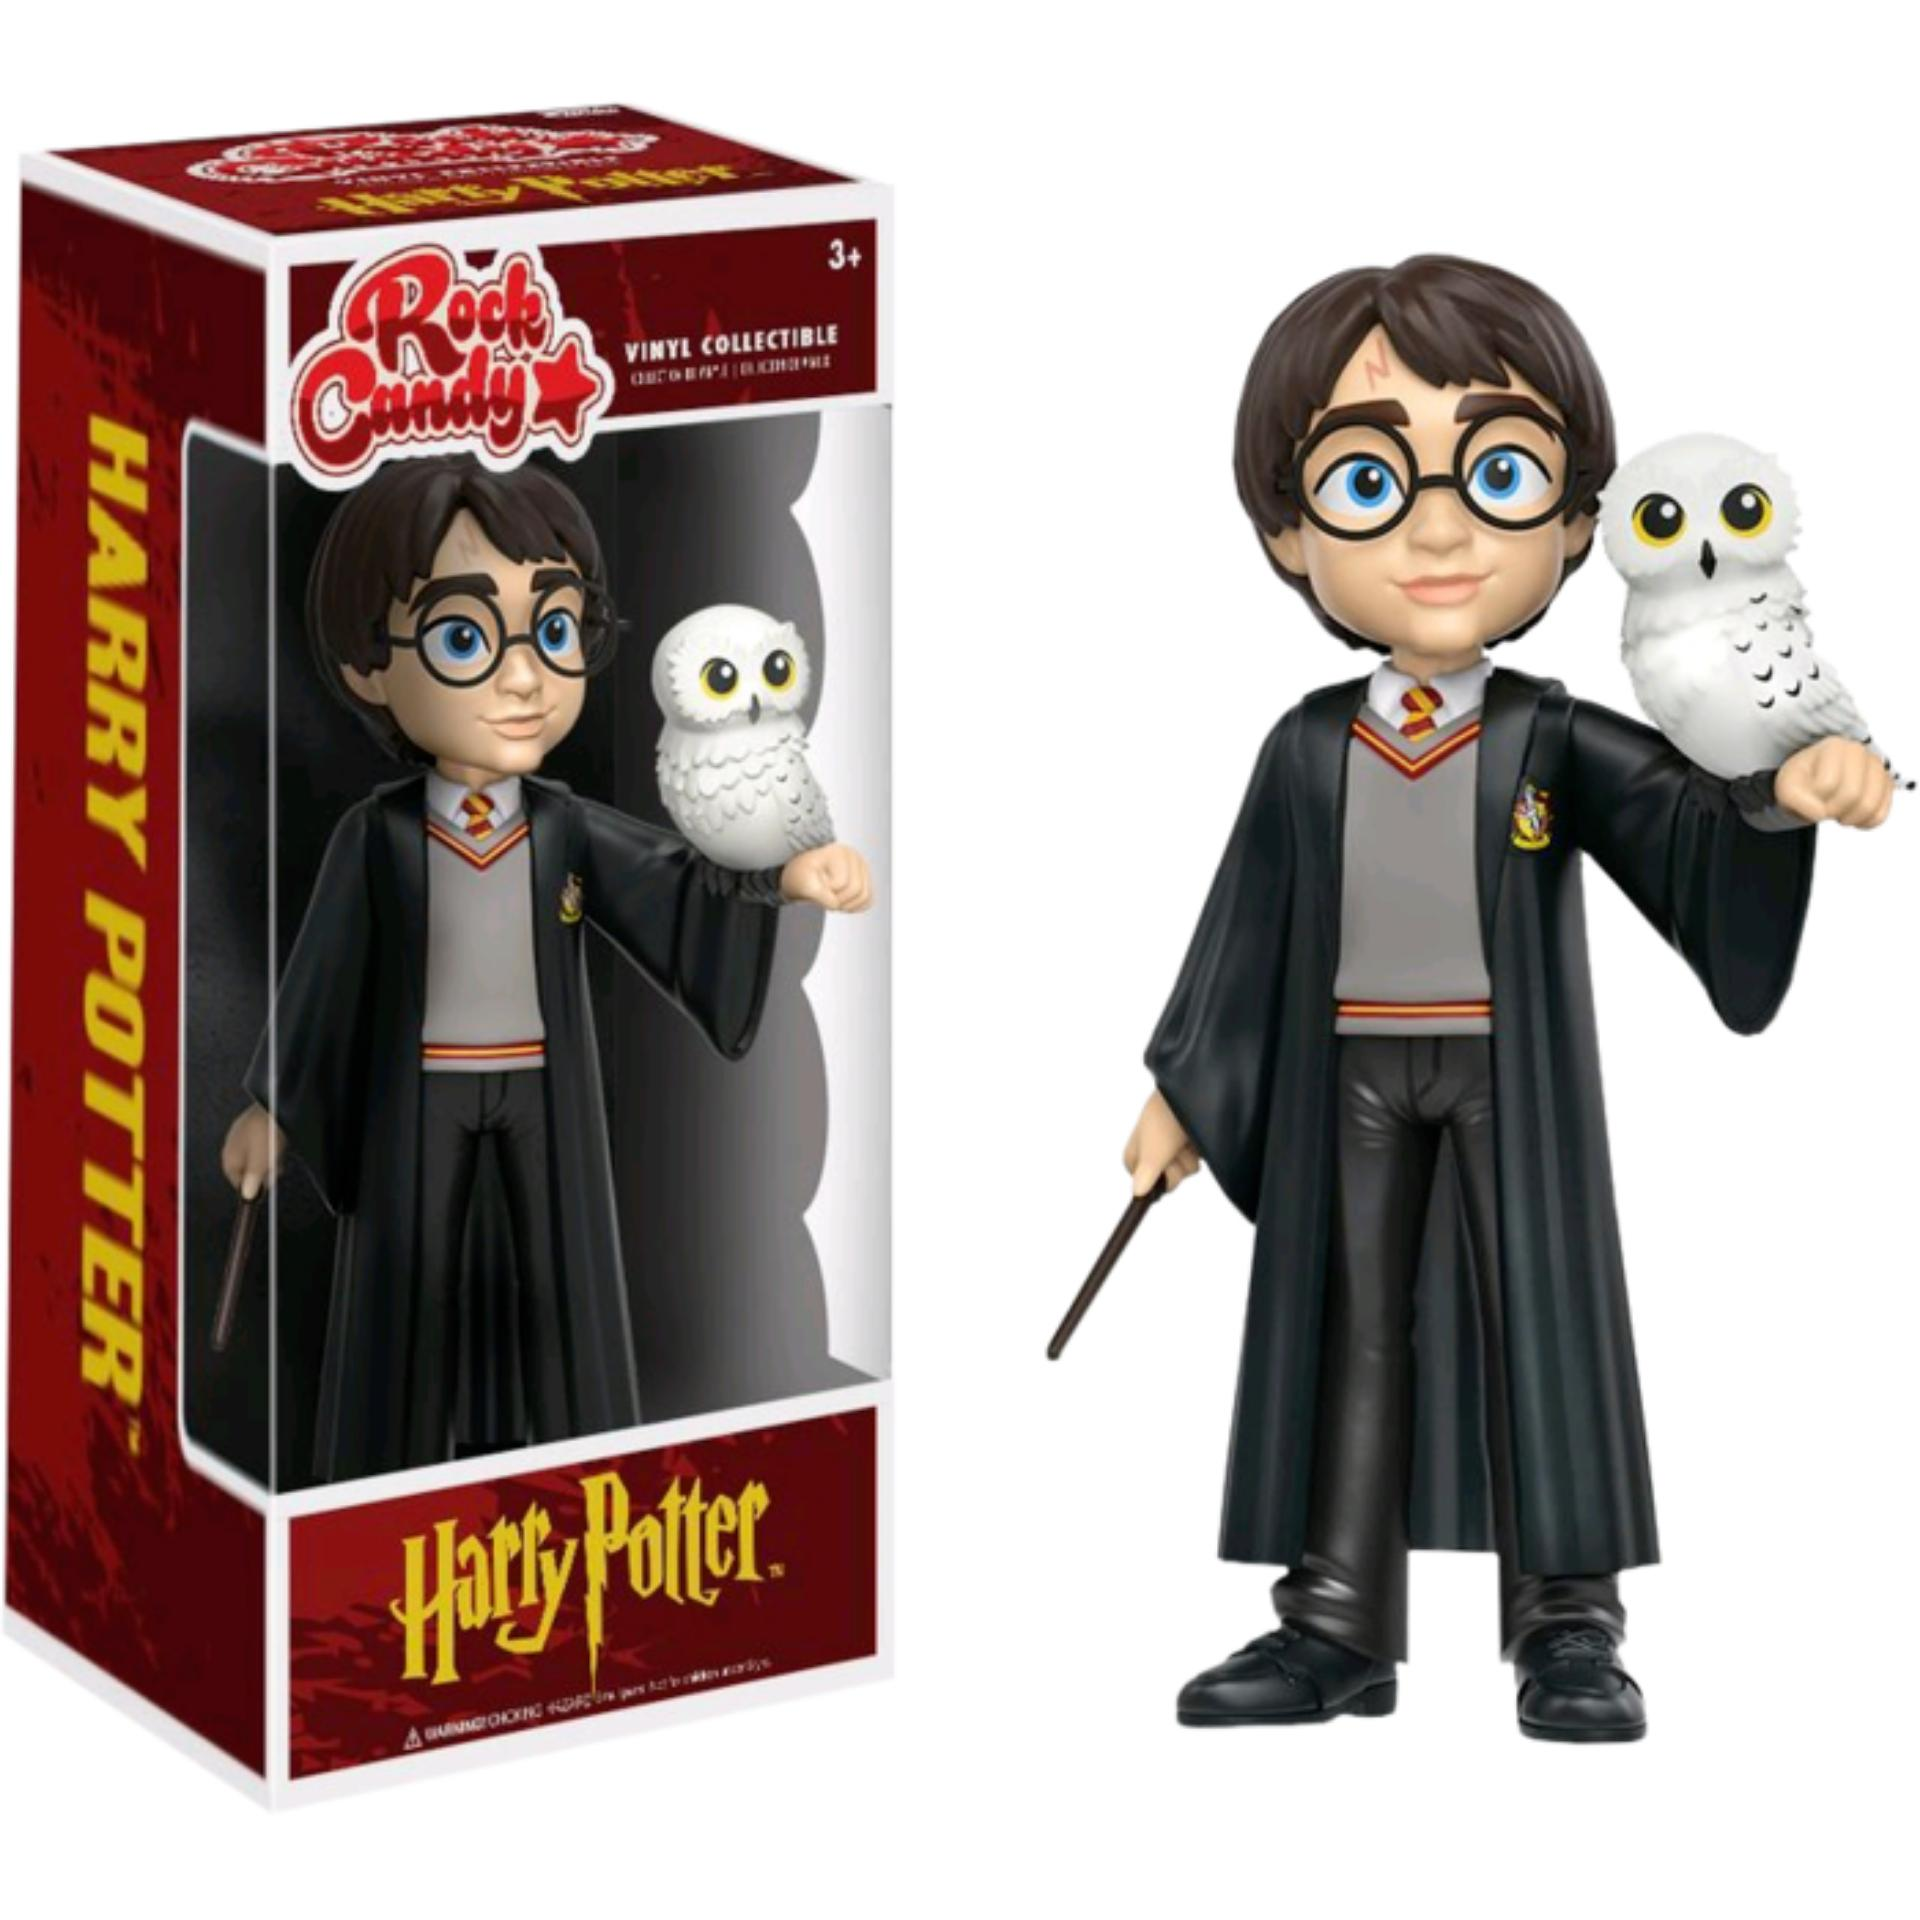 Buy Sell Cheapest Huaxian Harry Potter Best Quality Product Deals Soft Cover And The Deathly Hallows Dan Relikui Kematian Jk Rowling Funko Rock Candy